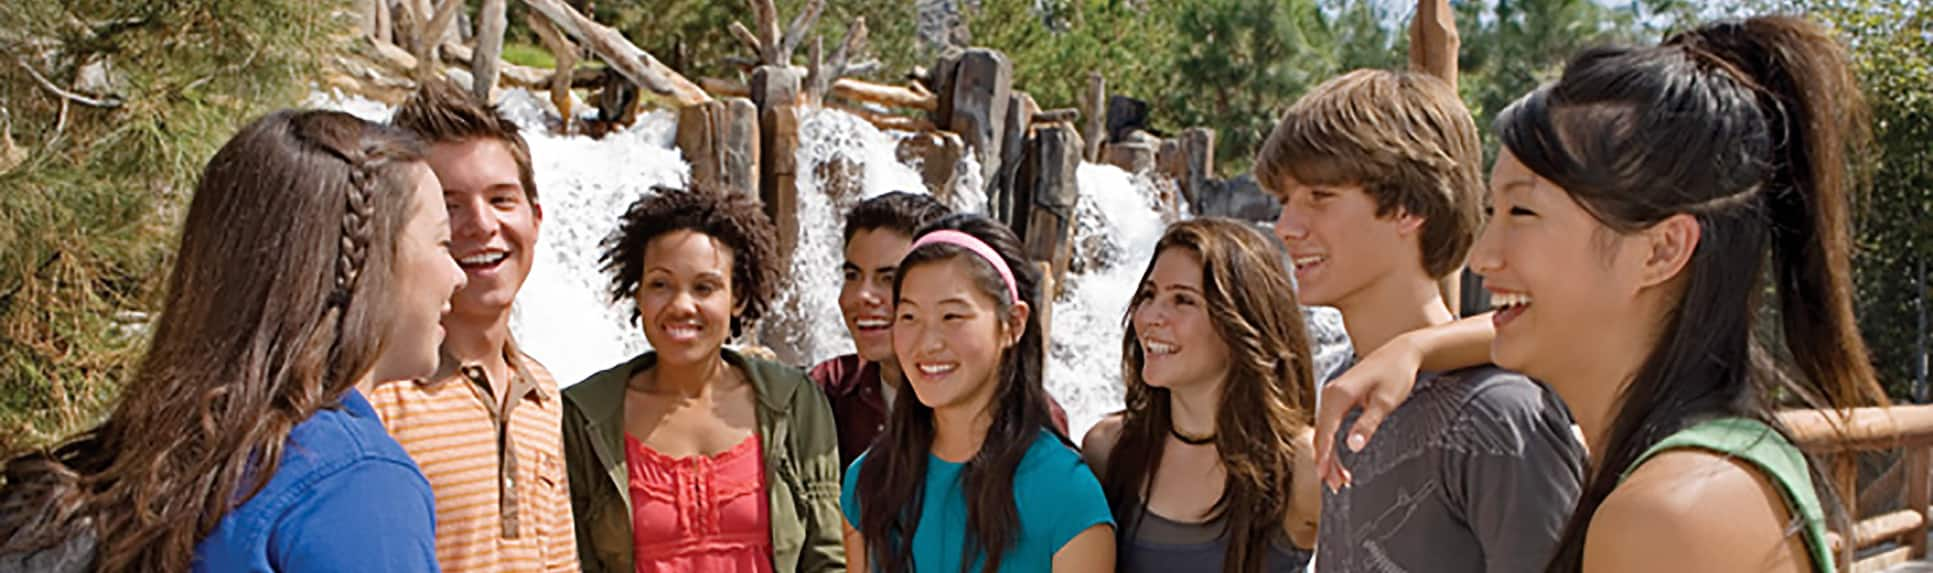 A group of smiling young adults